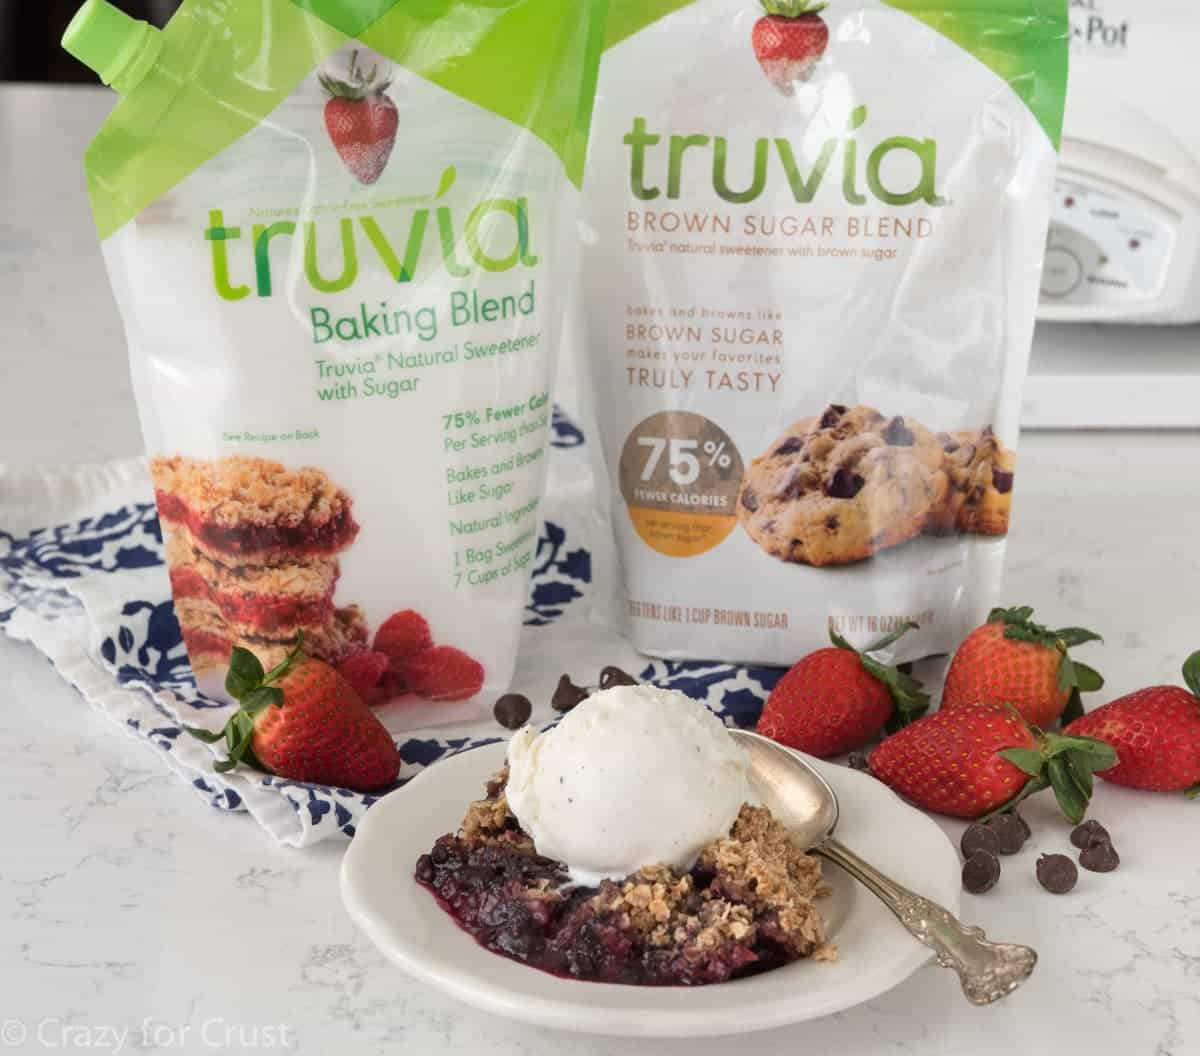 Crockpot Berry Crumble using Truvia